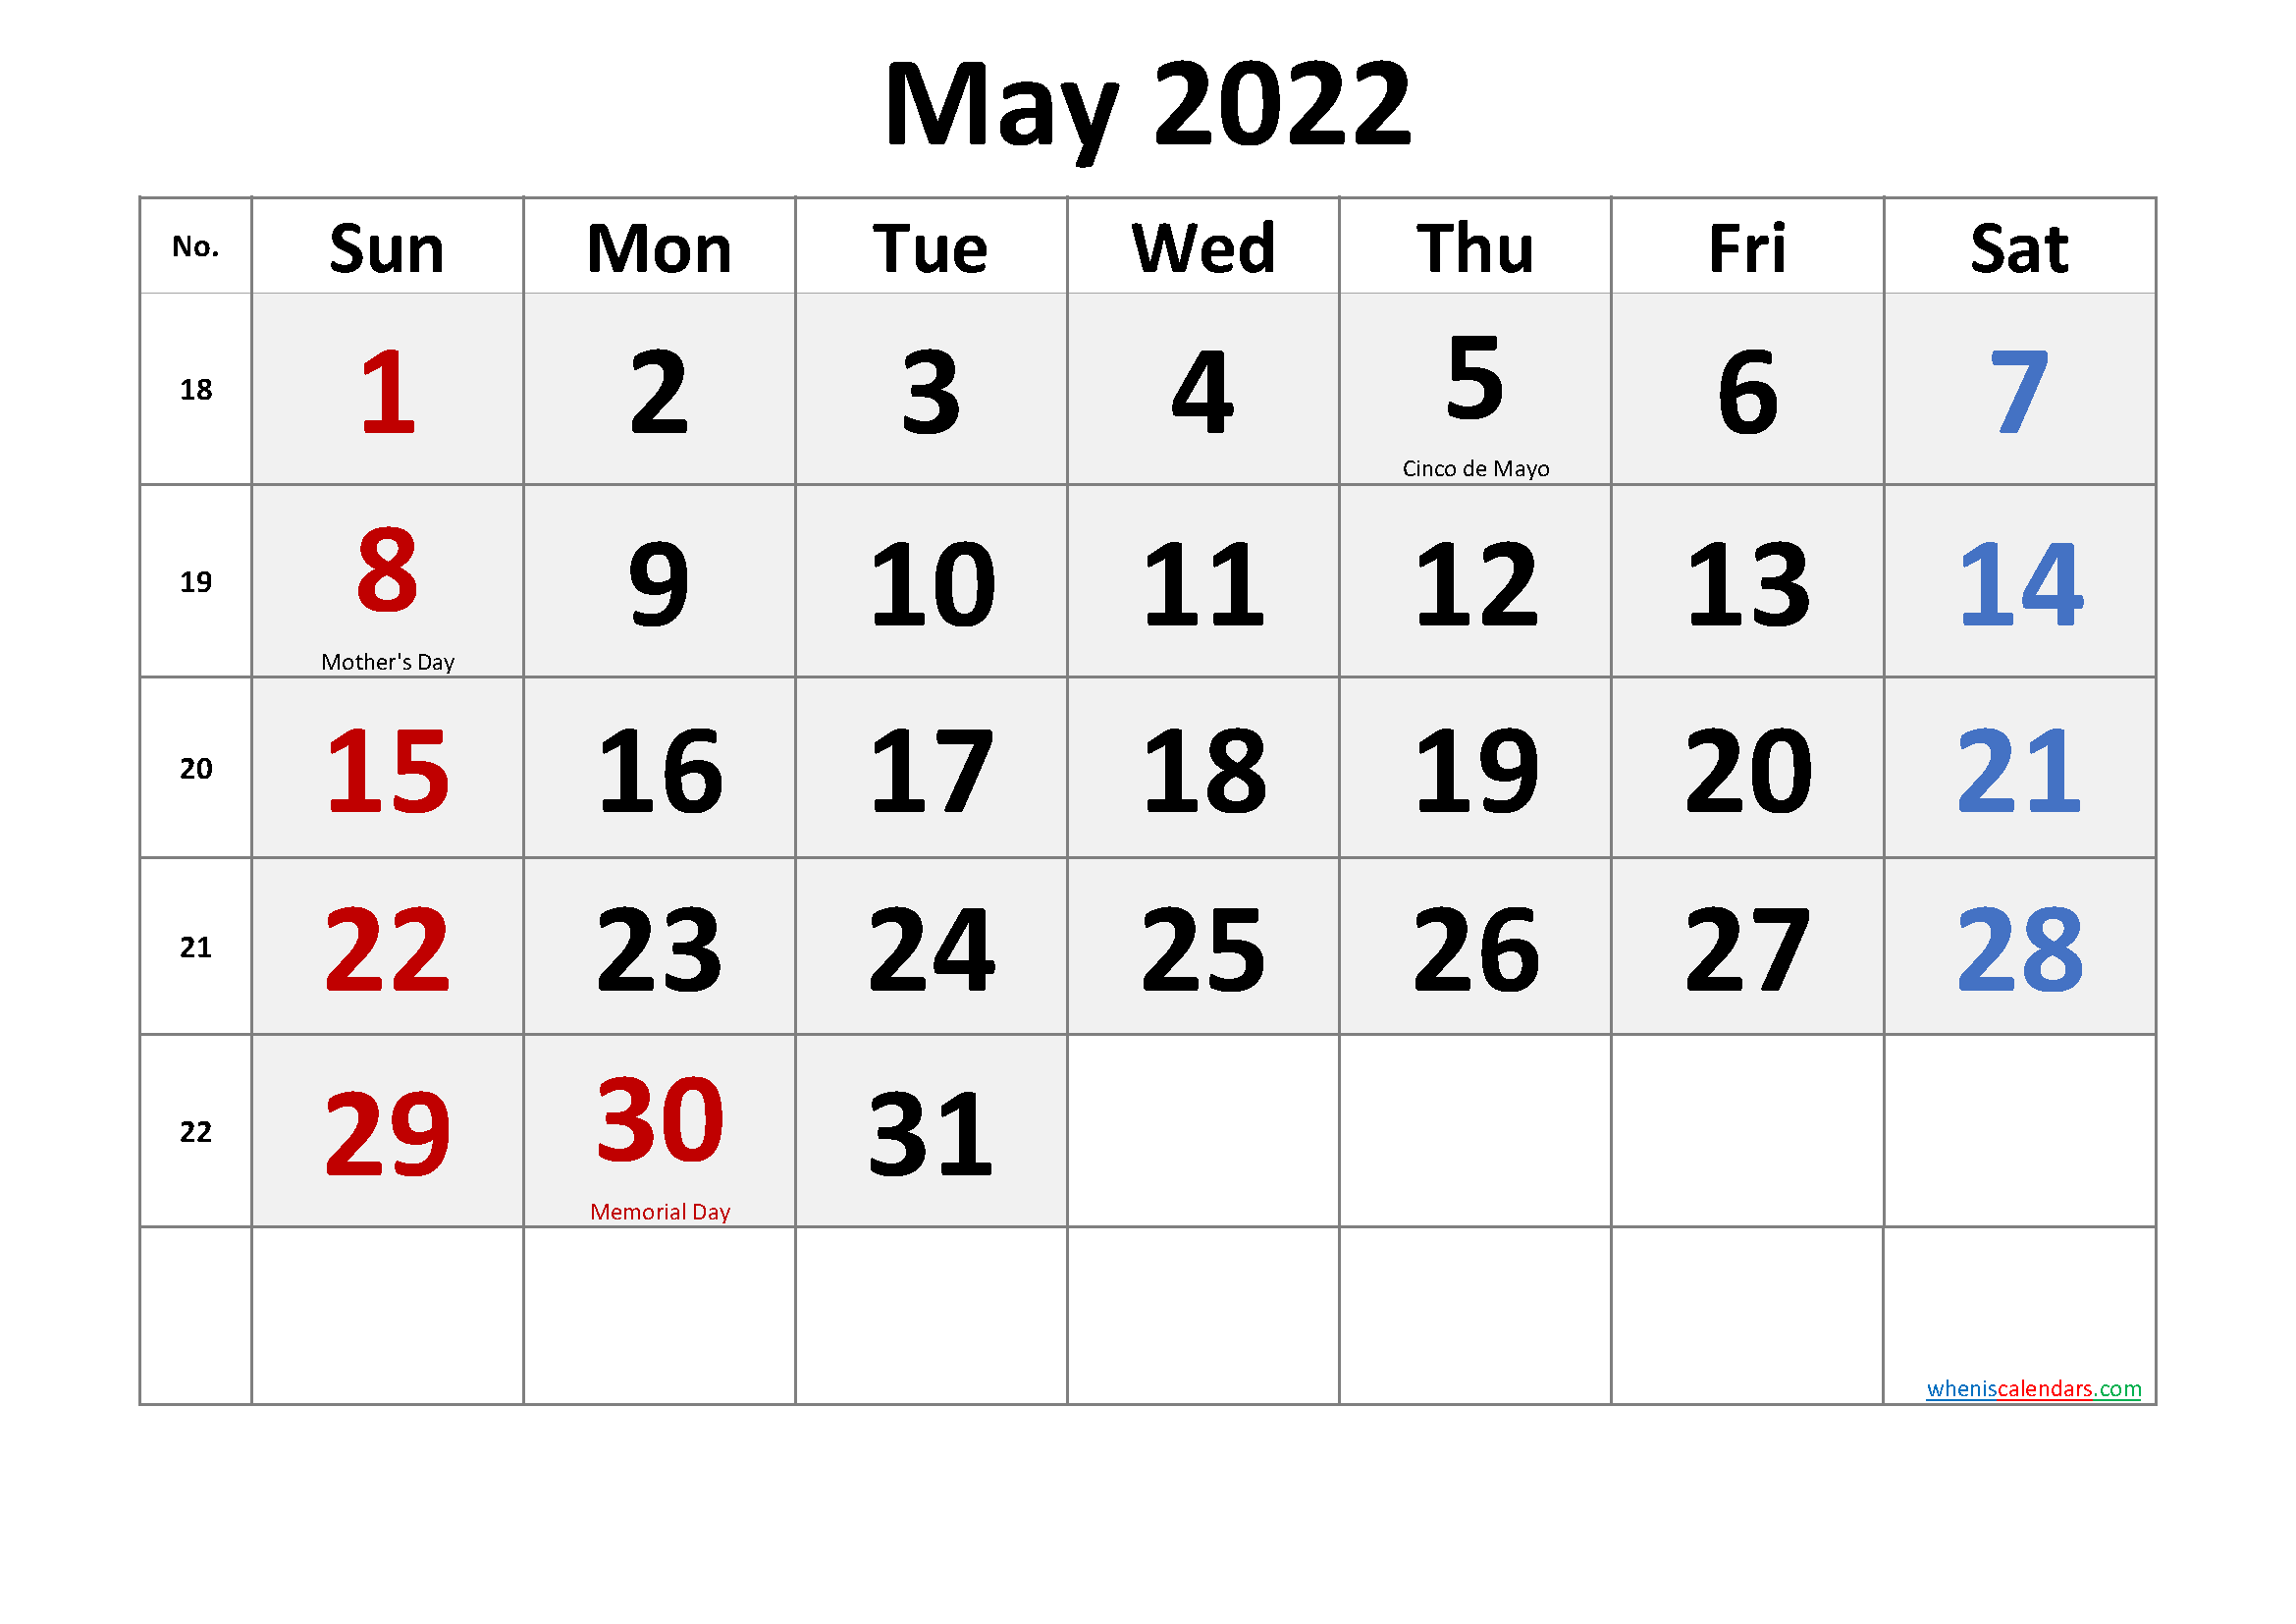 May 2022 Calendar with Holidays Printable